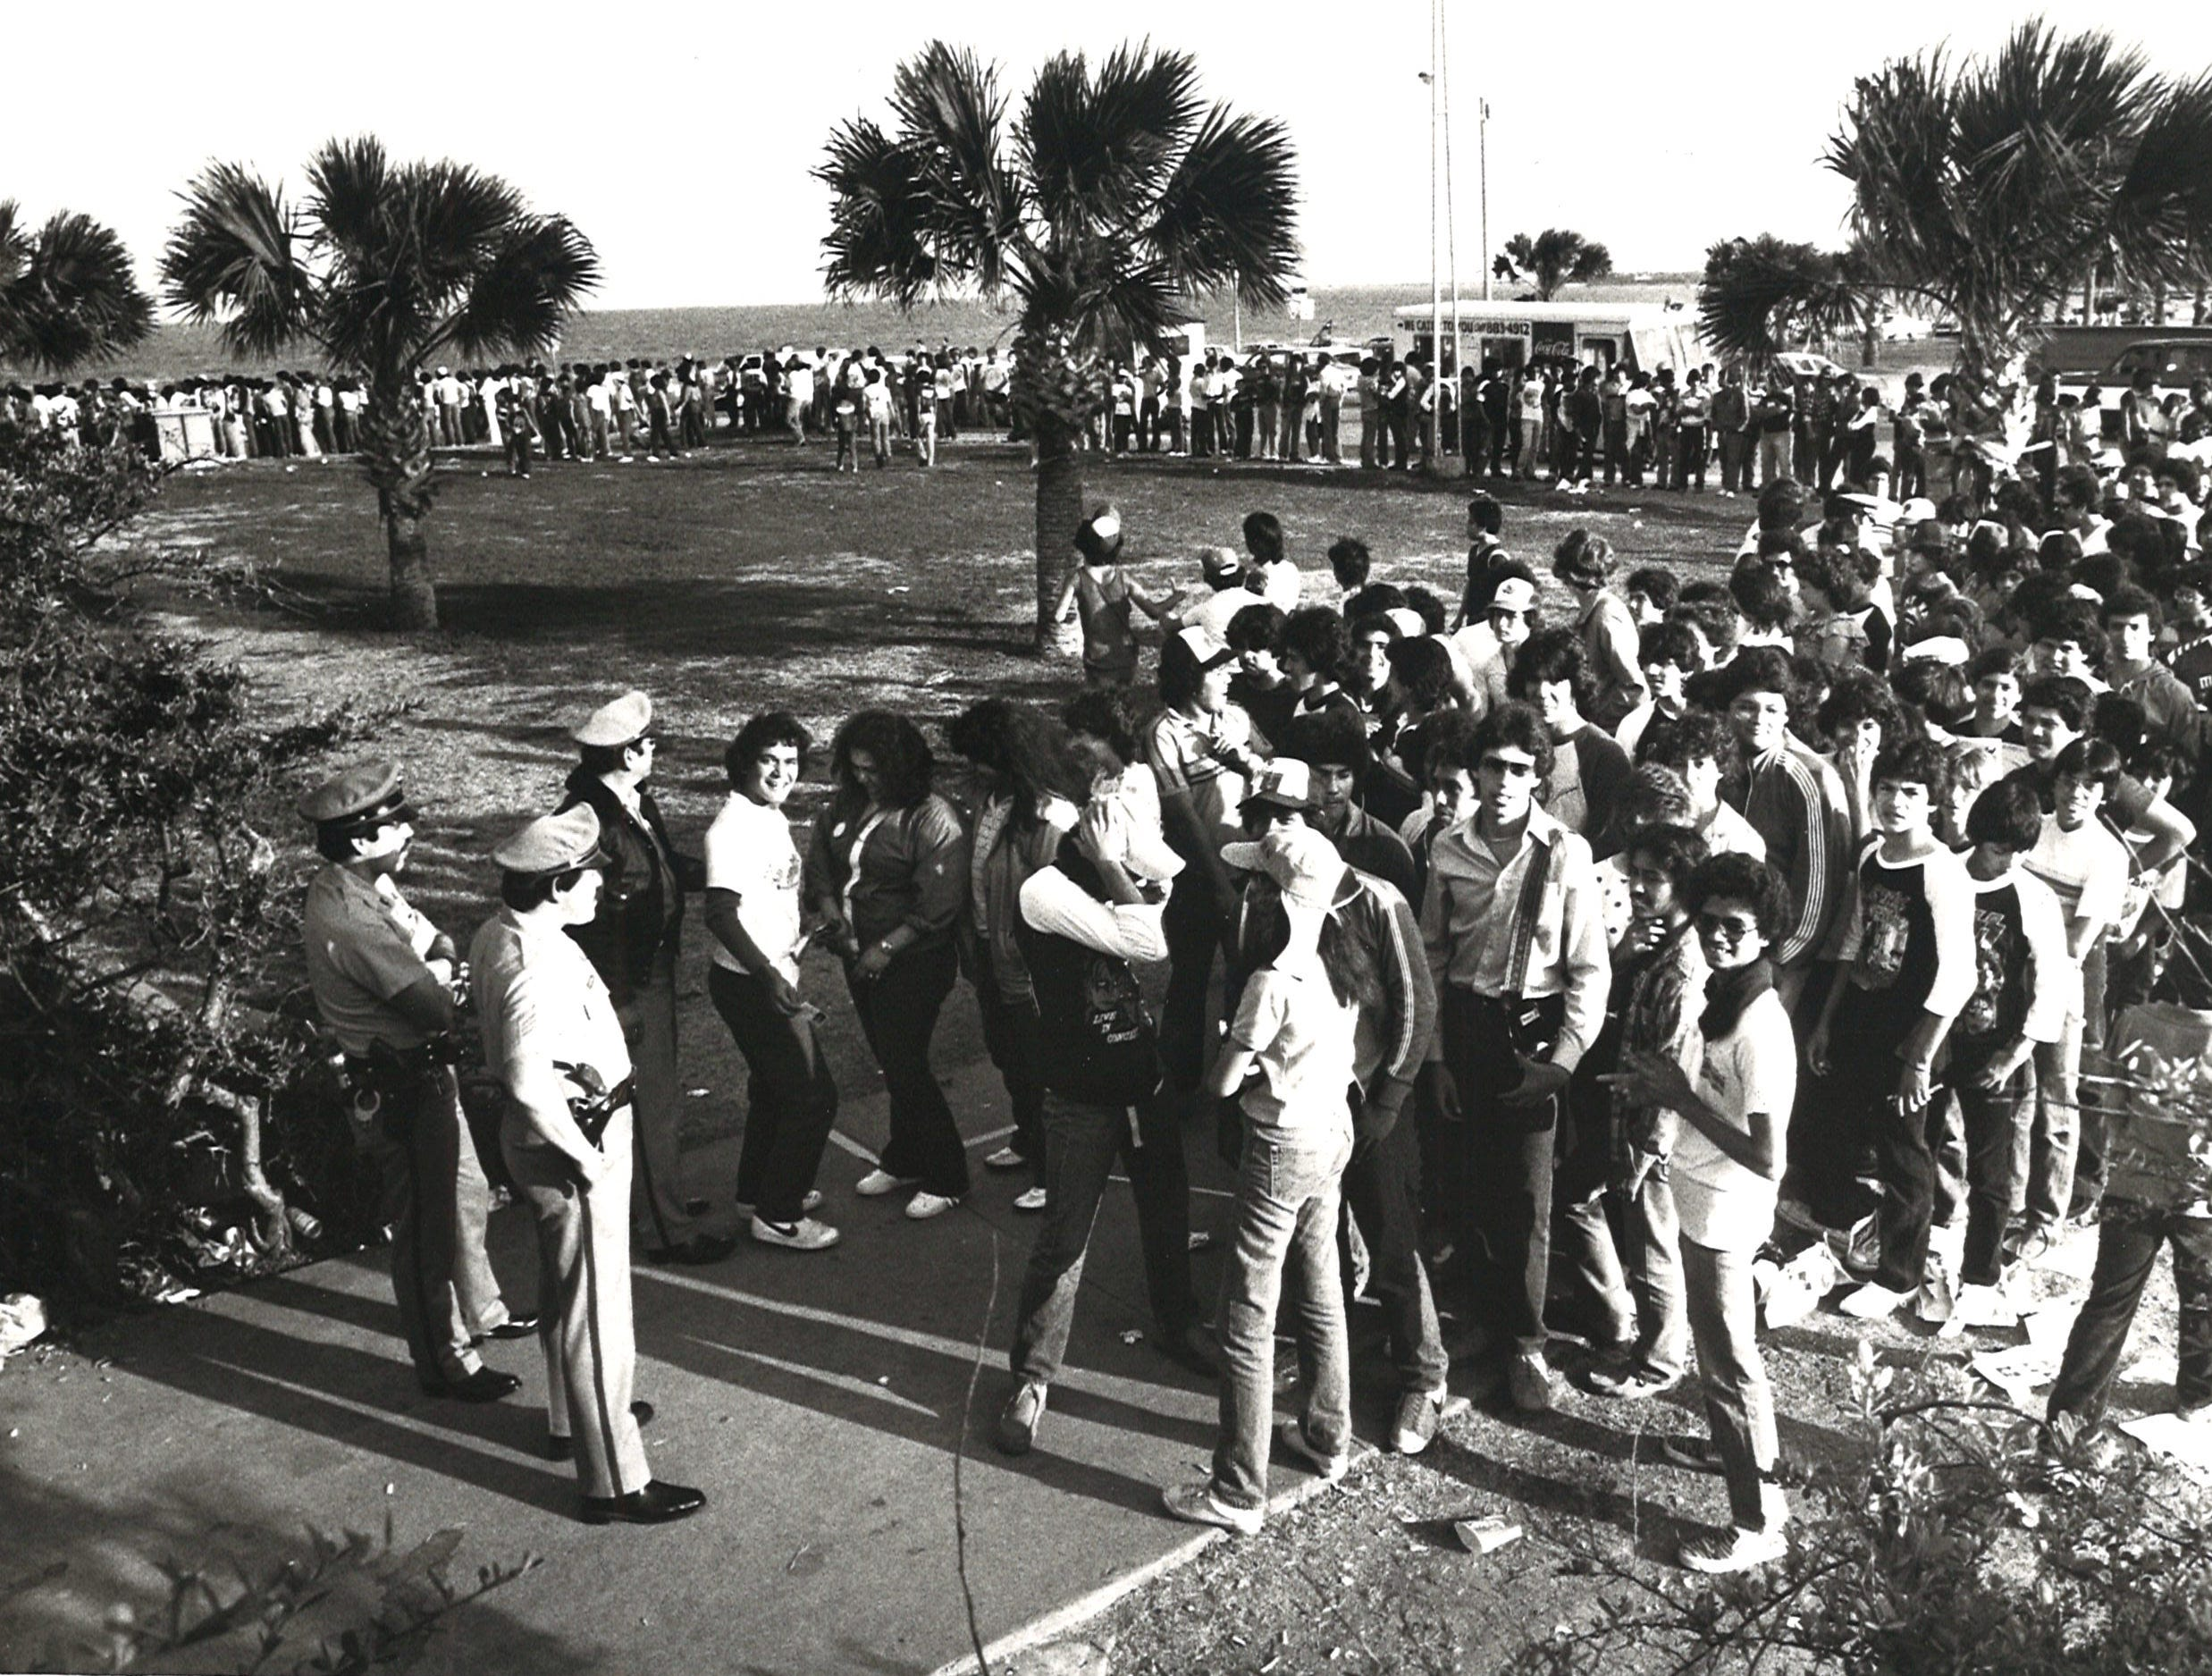 Fans lined up early for the Kiss concert on March 14, 1983 at Memorial Coliseum in Corpus Christi to snag good seats. About 6,500 people attended the sold-out concert.